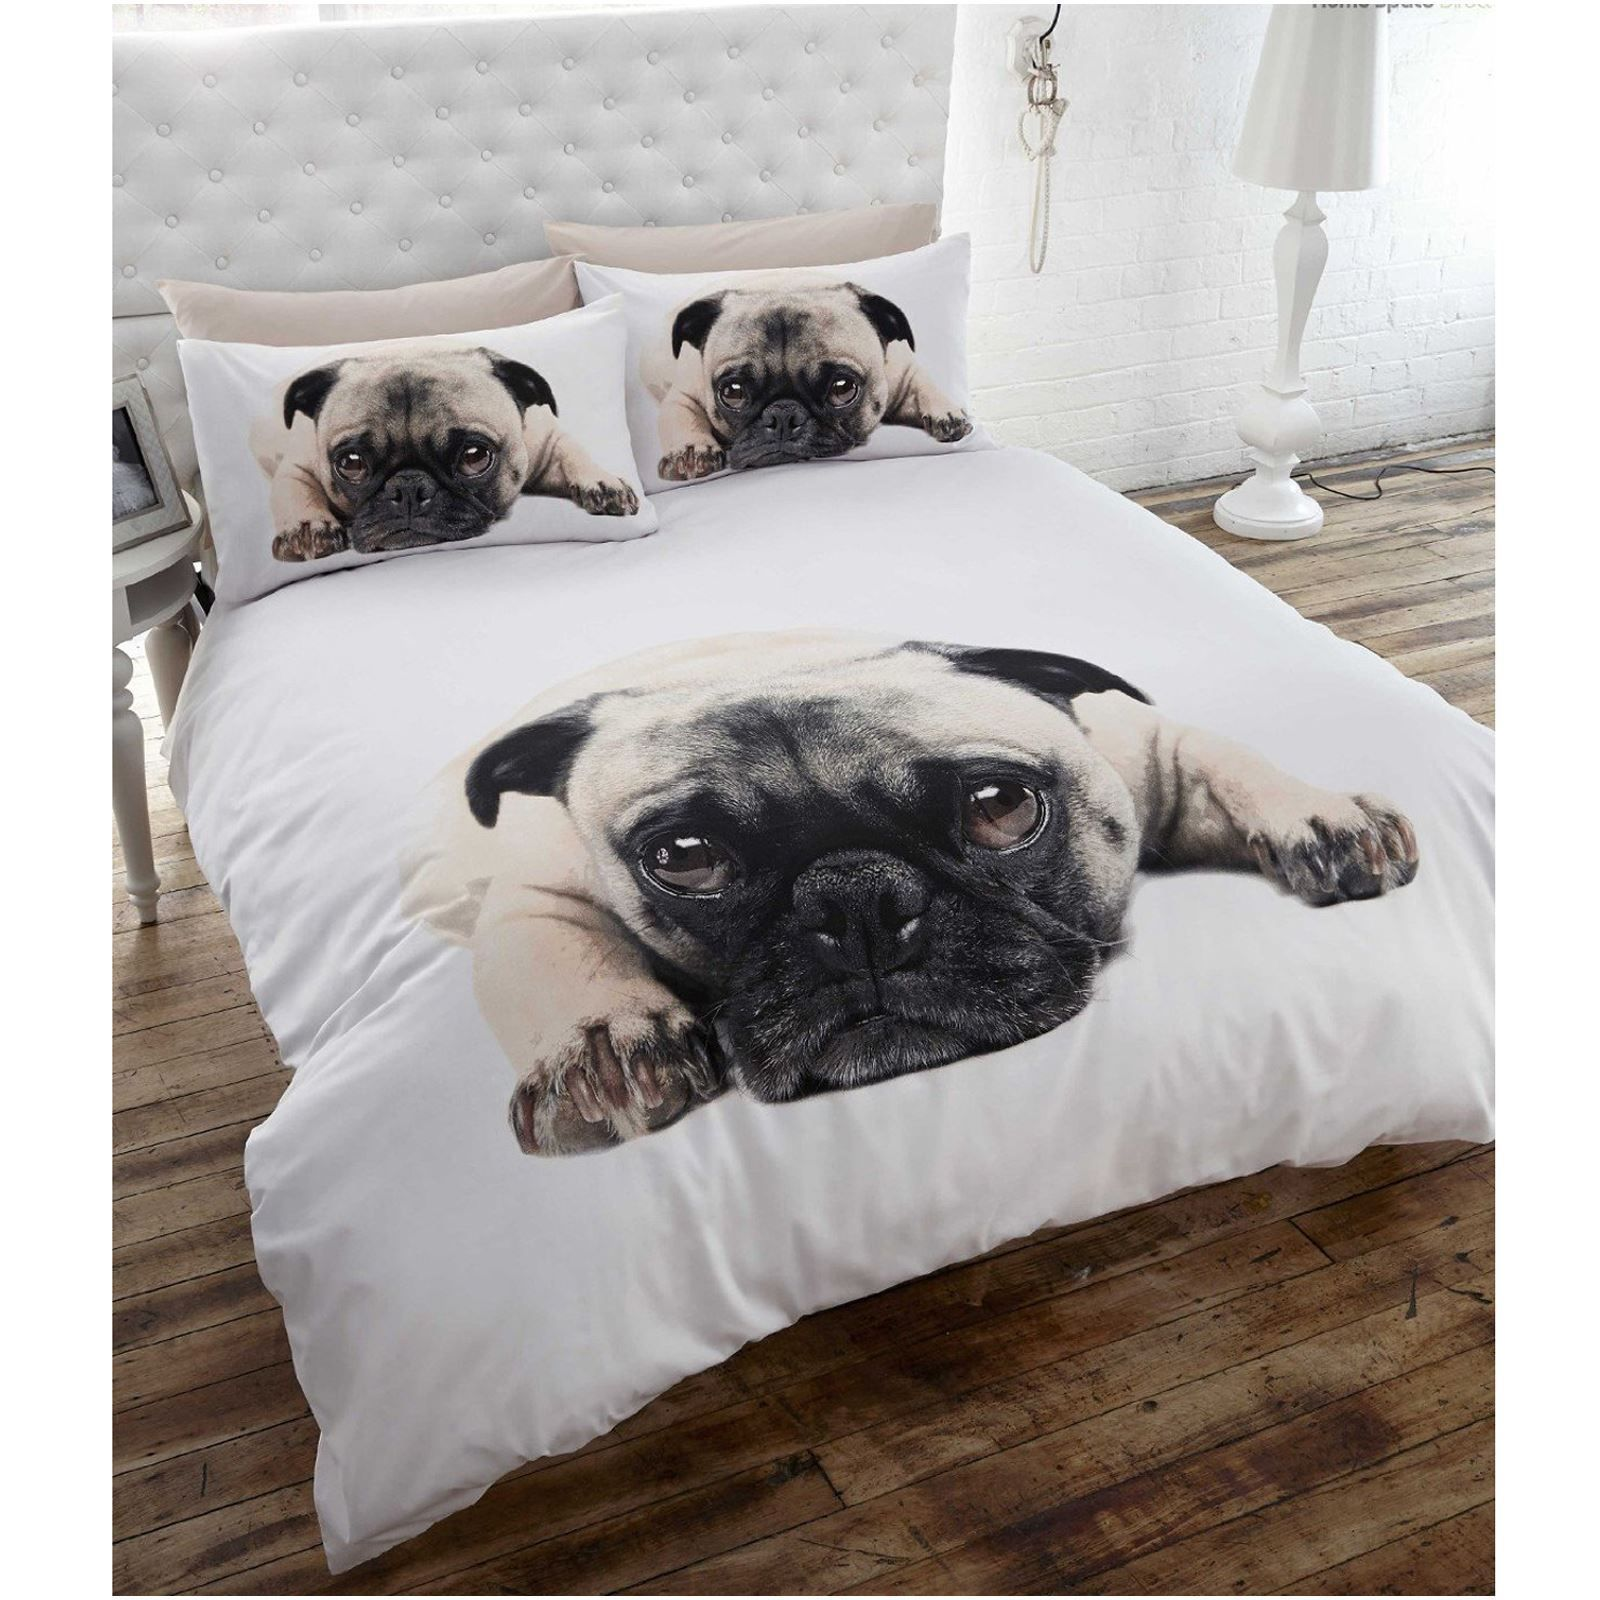 Funny bed sheets - Pug Puppy Dog Full Size Duvet Cover Bed Sheets Animal Bedding